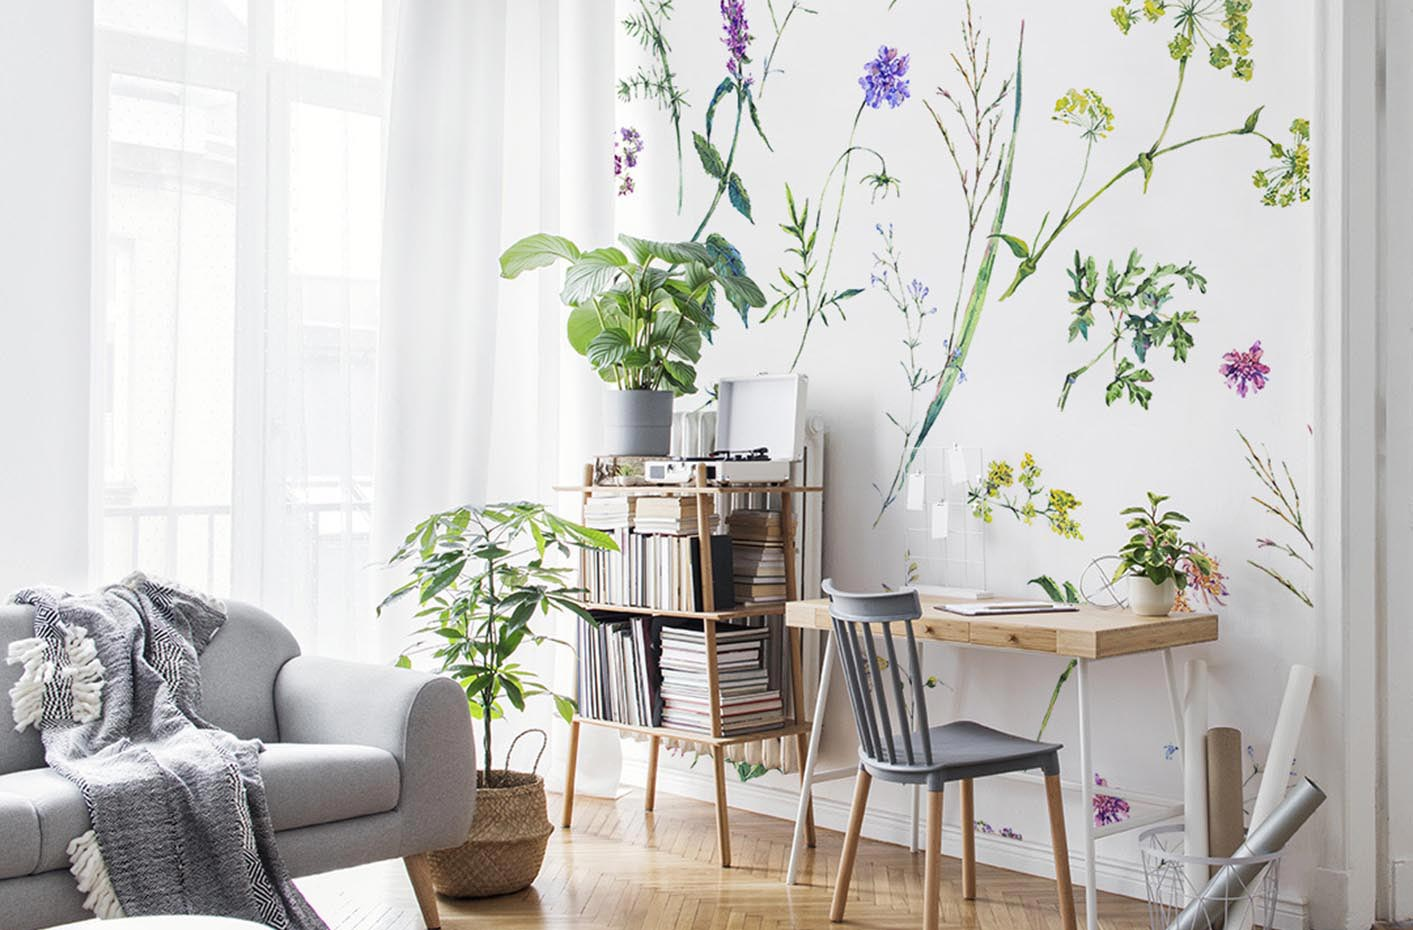 Flowers and herbs wall mural